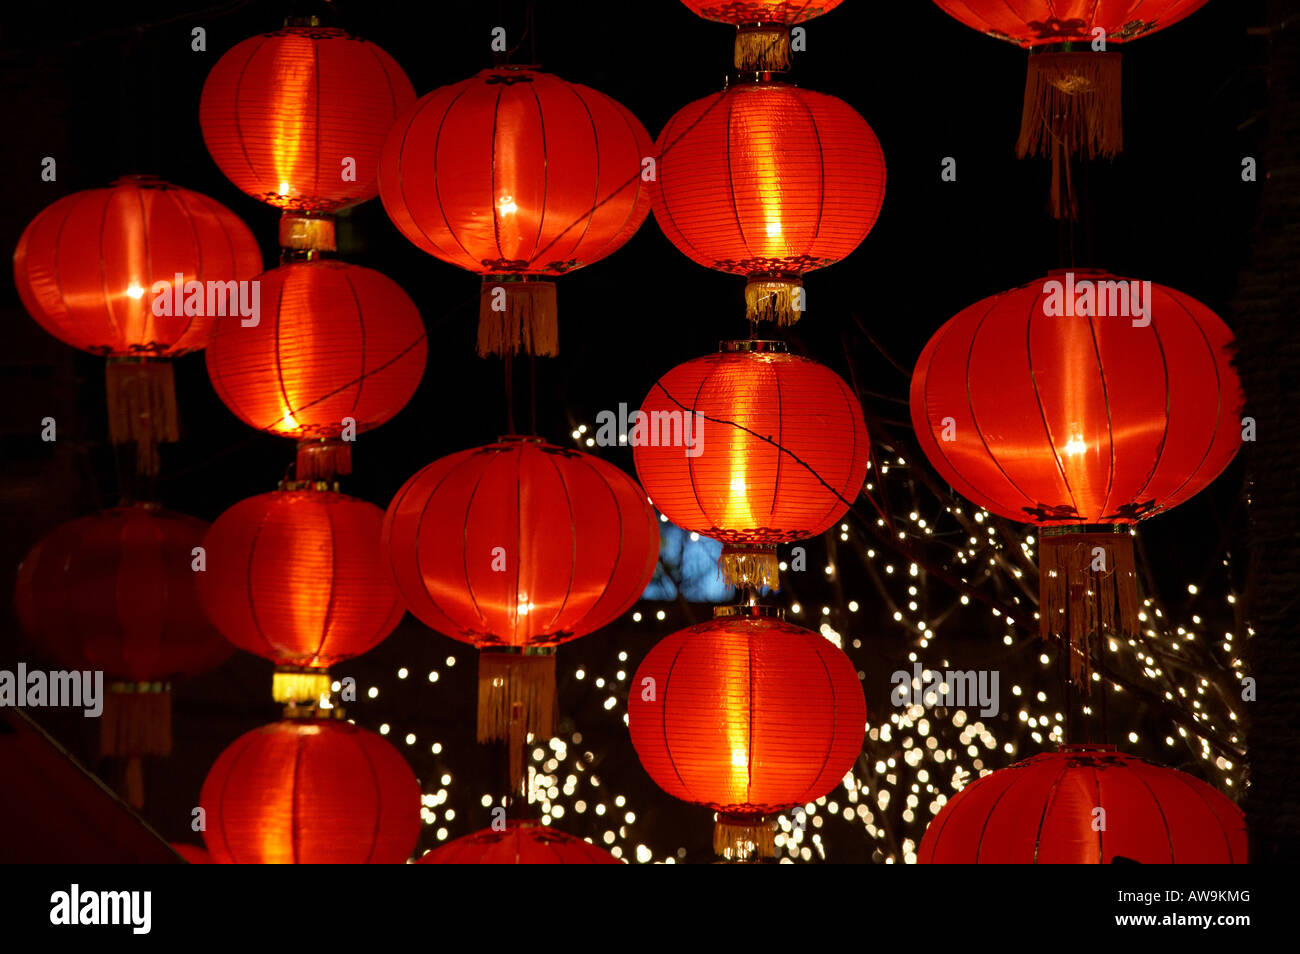 chinese new year red lantern festival celebrations in. Black Bedroom Furniture Sets. Home Design Ideas